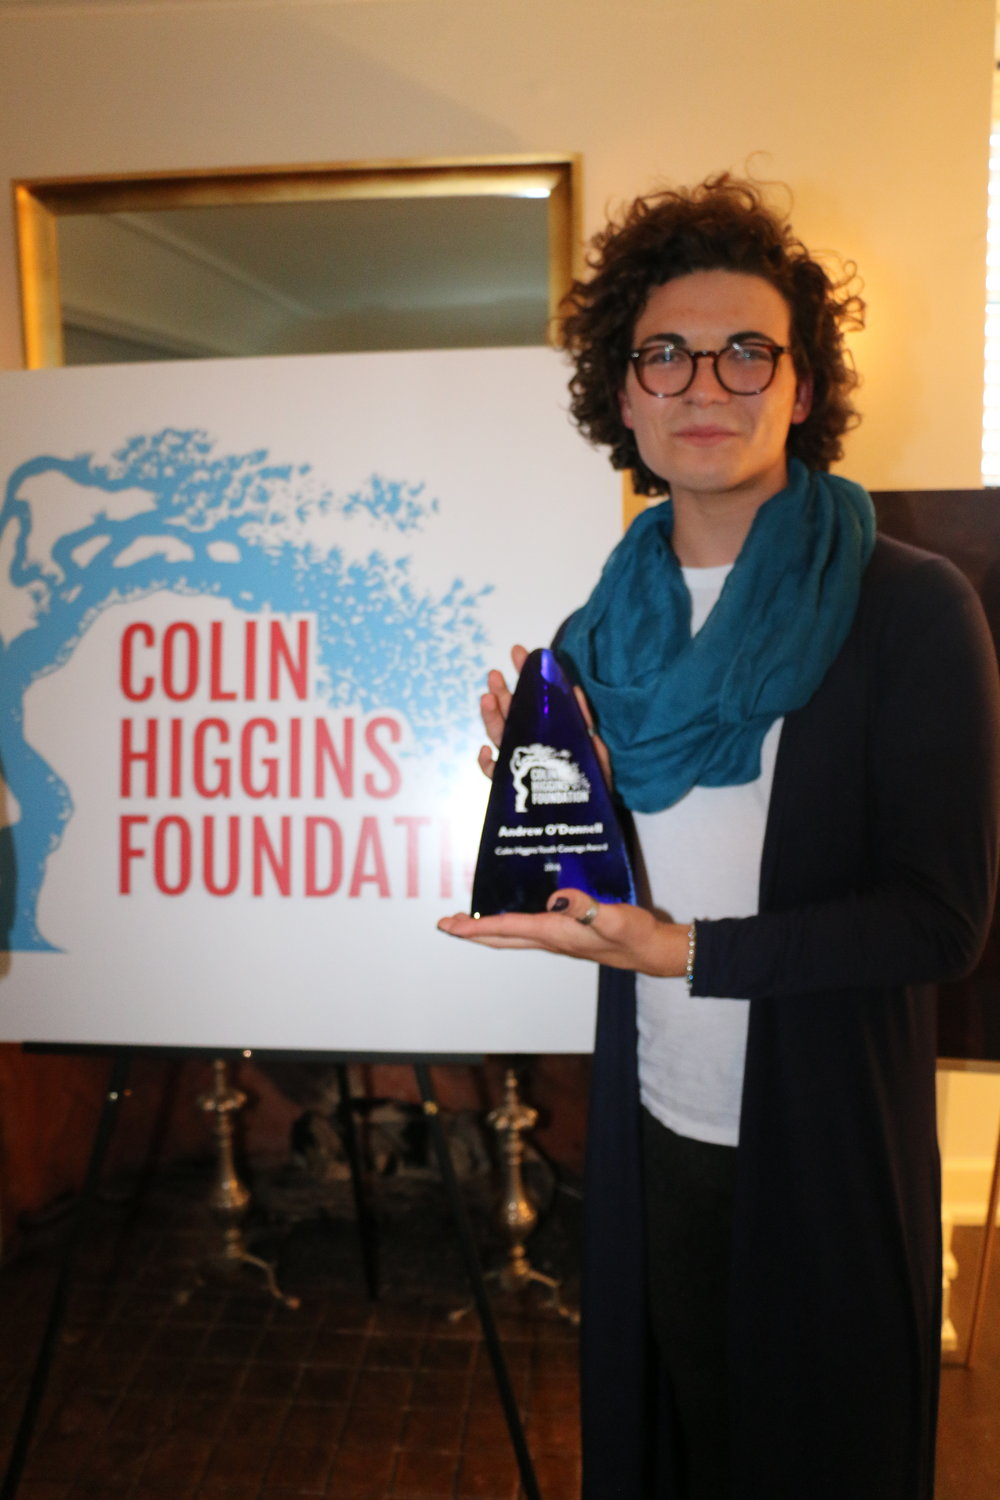 Colin Higgins Foundation Award Ceremony | 2016